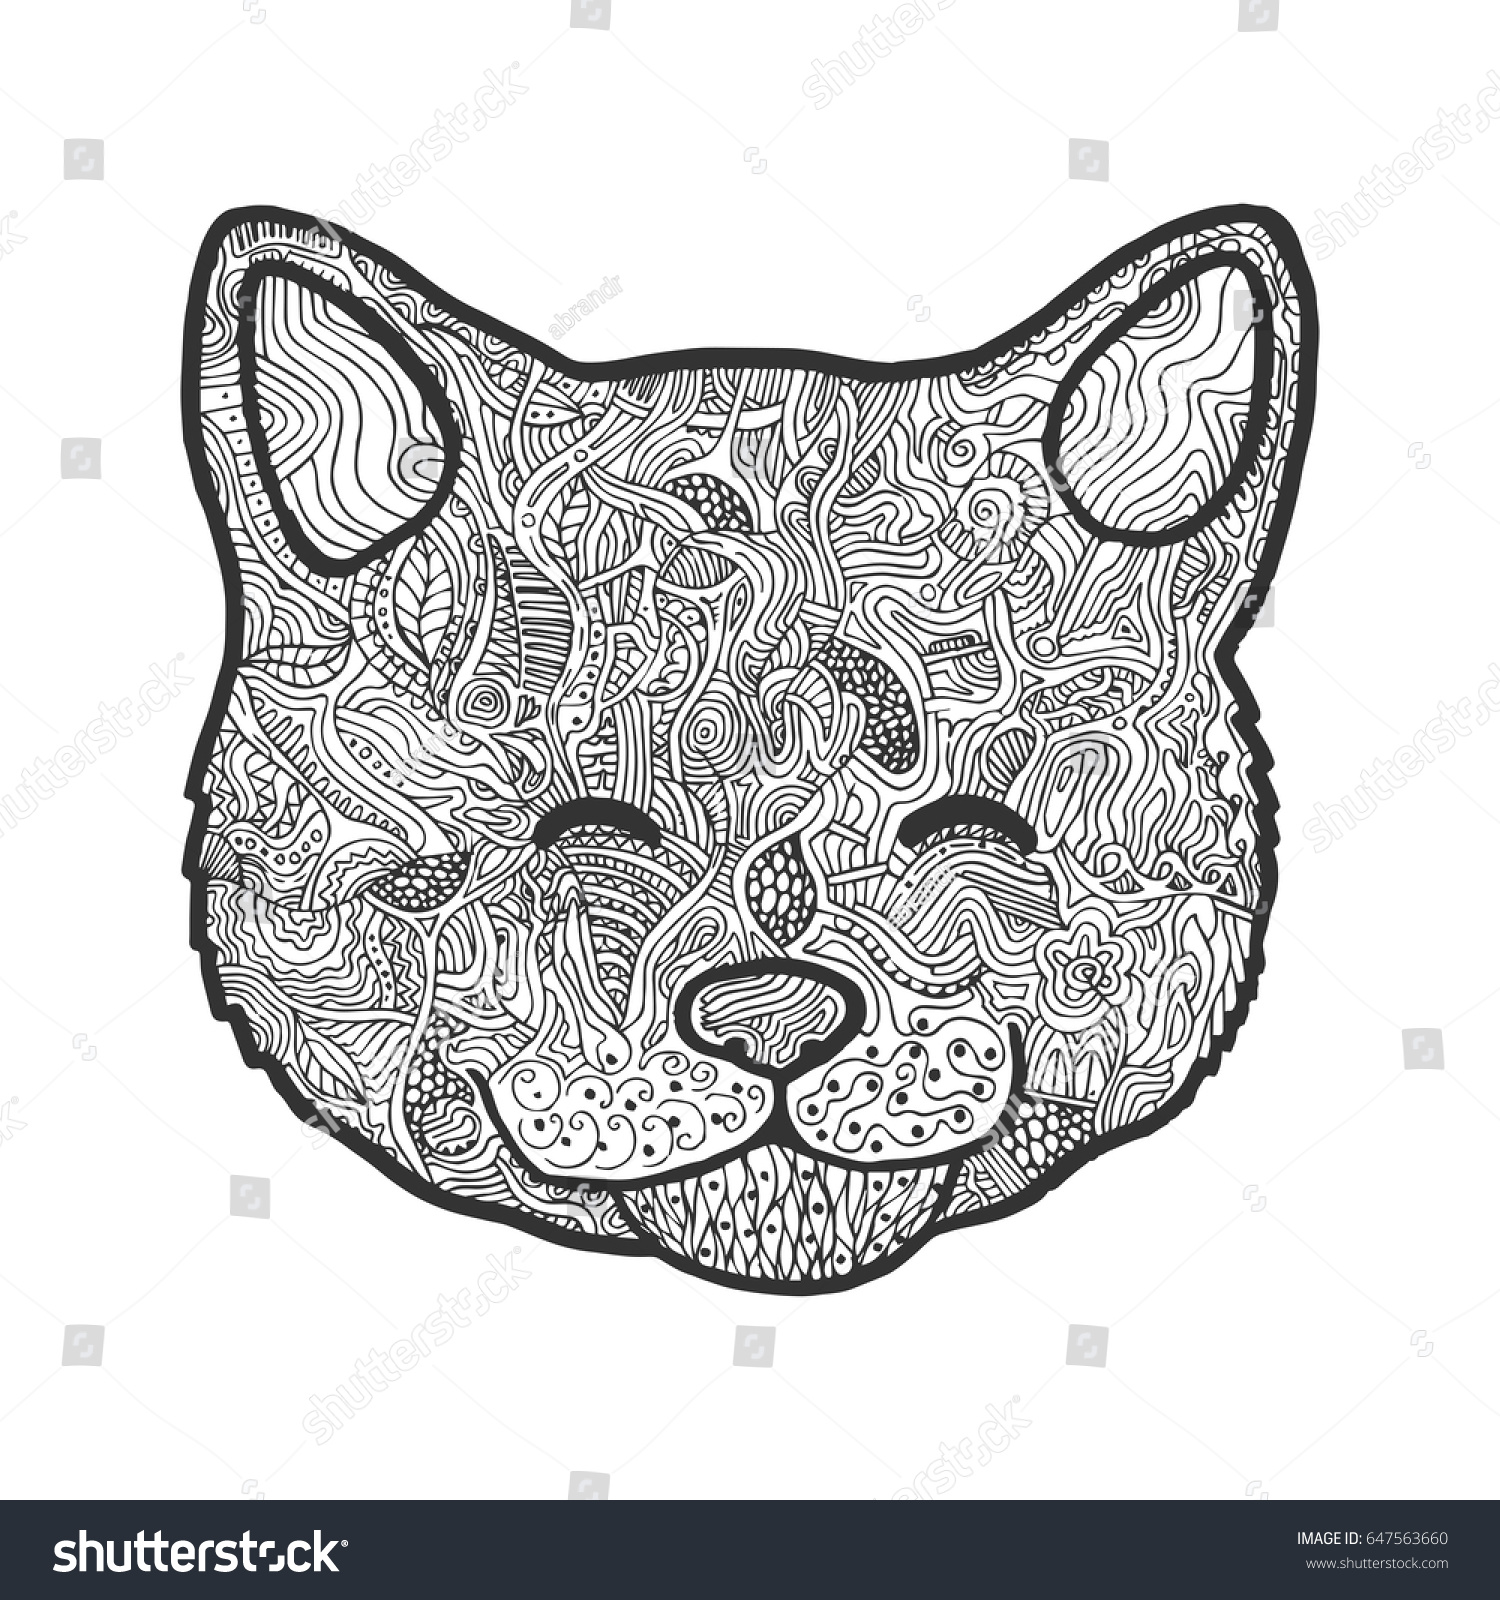 Zen Cats Head Hand Drawn With Abstract Patterns On Isolation Background Coloring Book Page